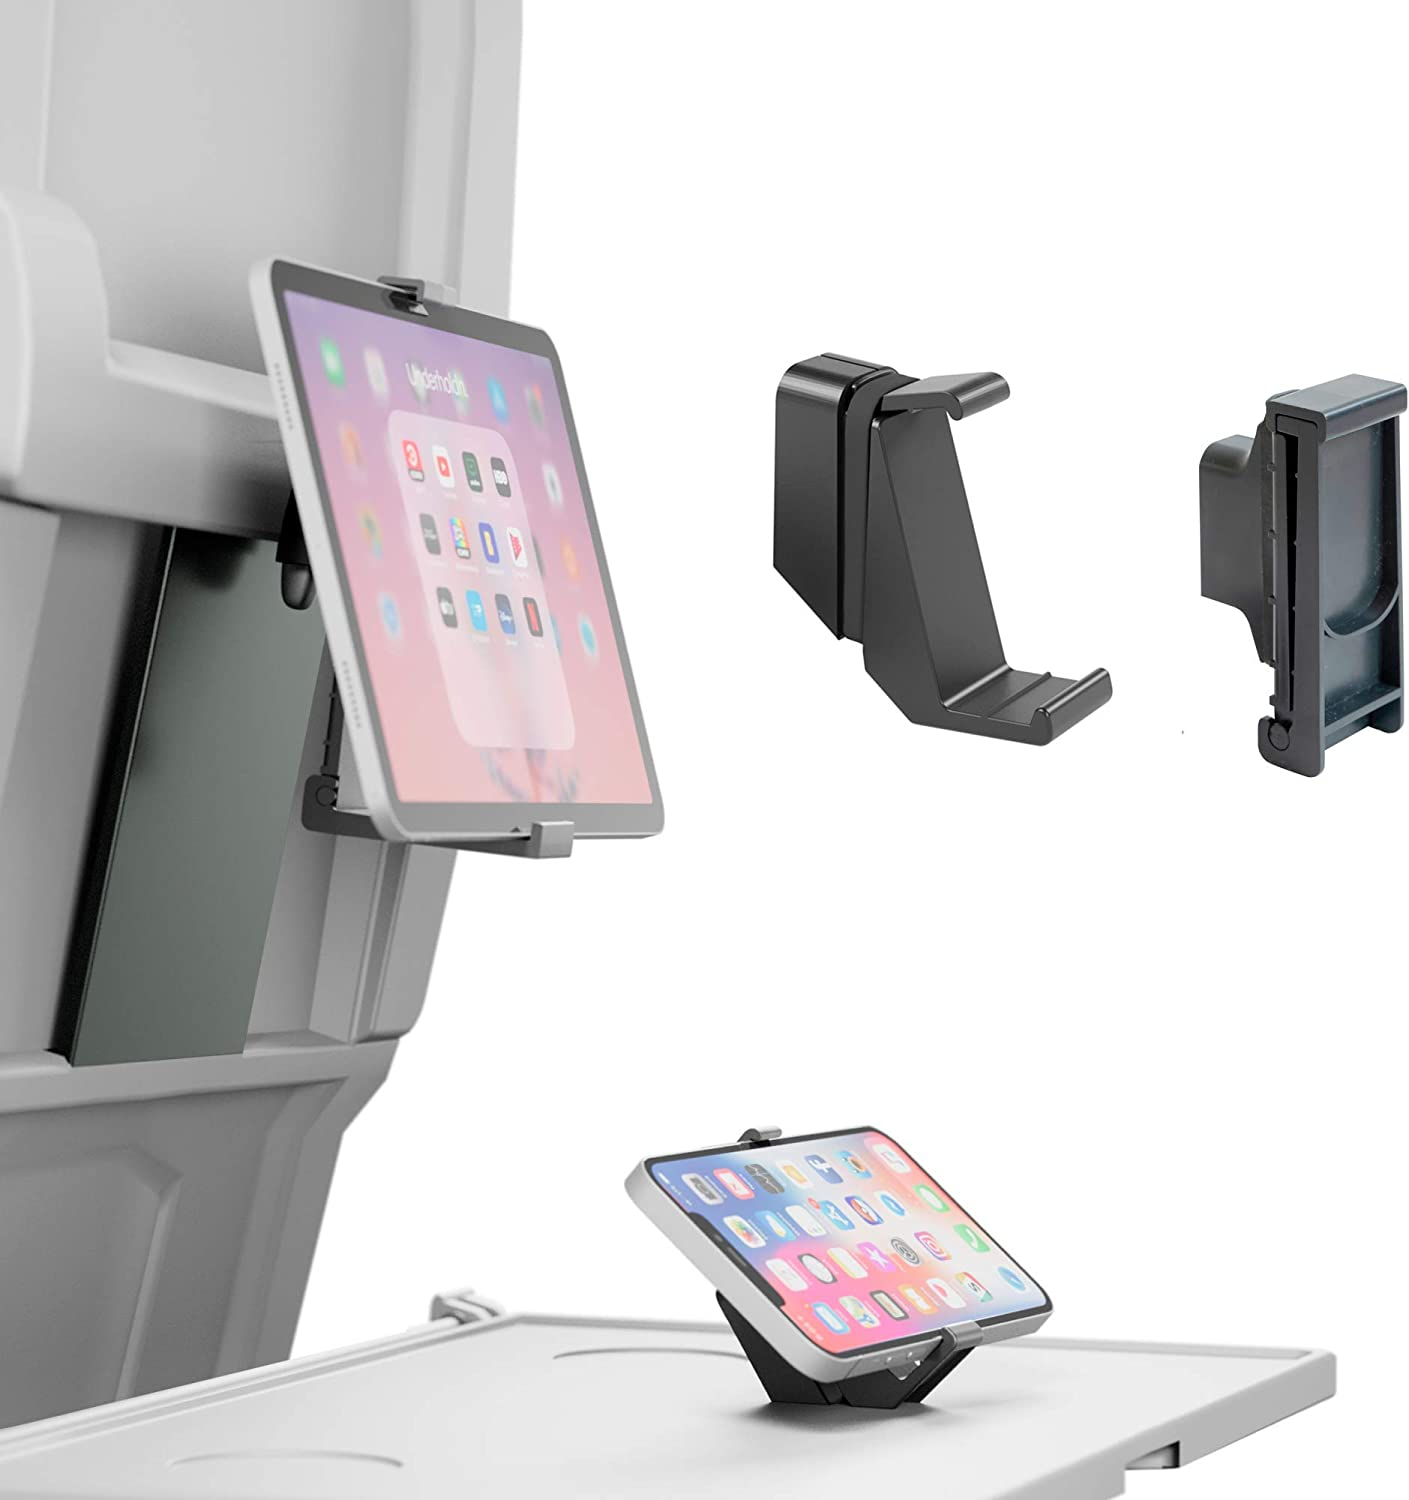 AIRMATE Duo - Combi Pack with Airplane Phone Holder & Tablet Stand - Adjustable Tablet Phone Stand for Travel - Kit with iPhone iPad Stand for Airplane - Practical Mobile Phone Tablet Stand